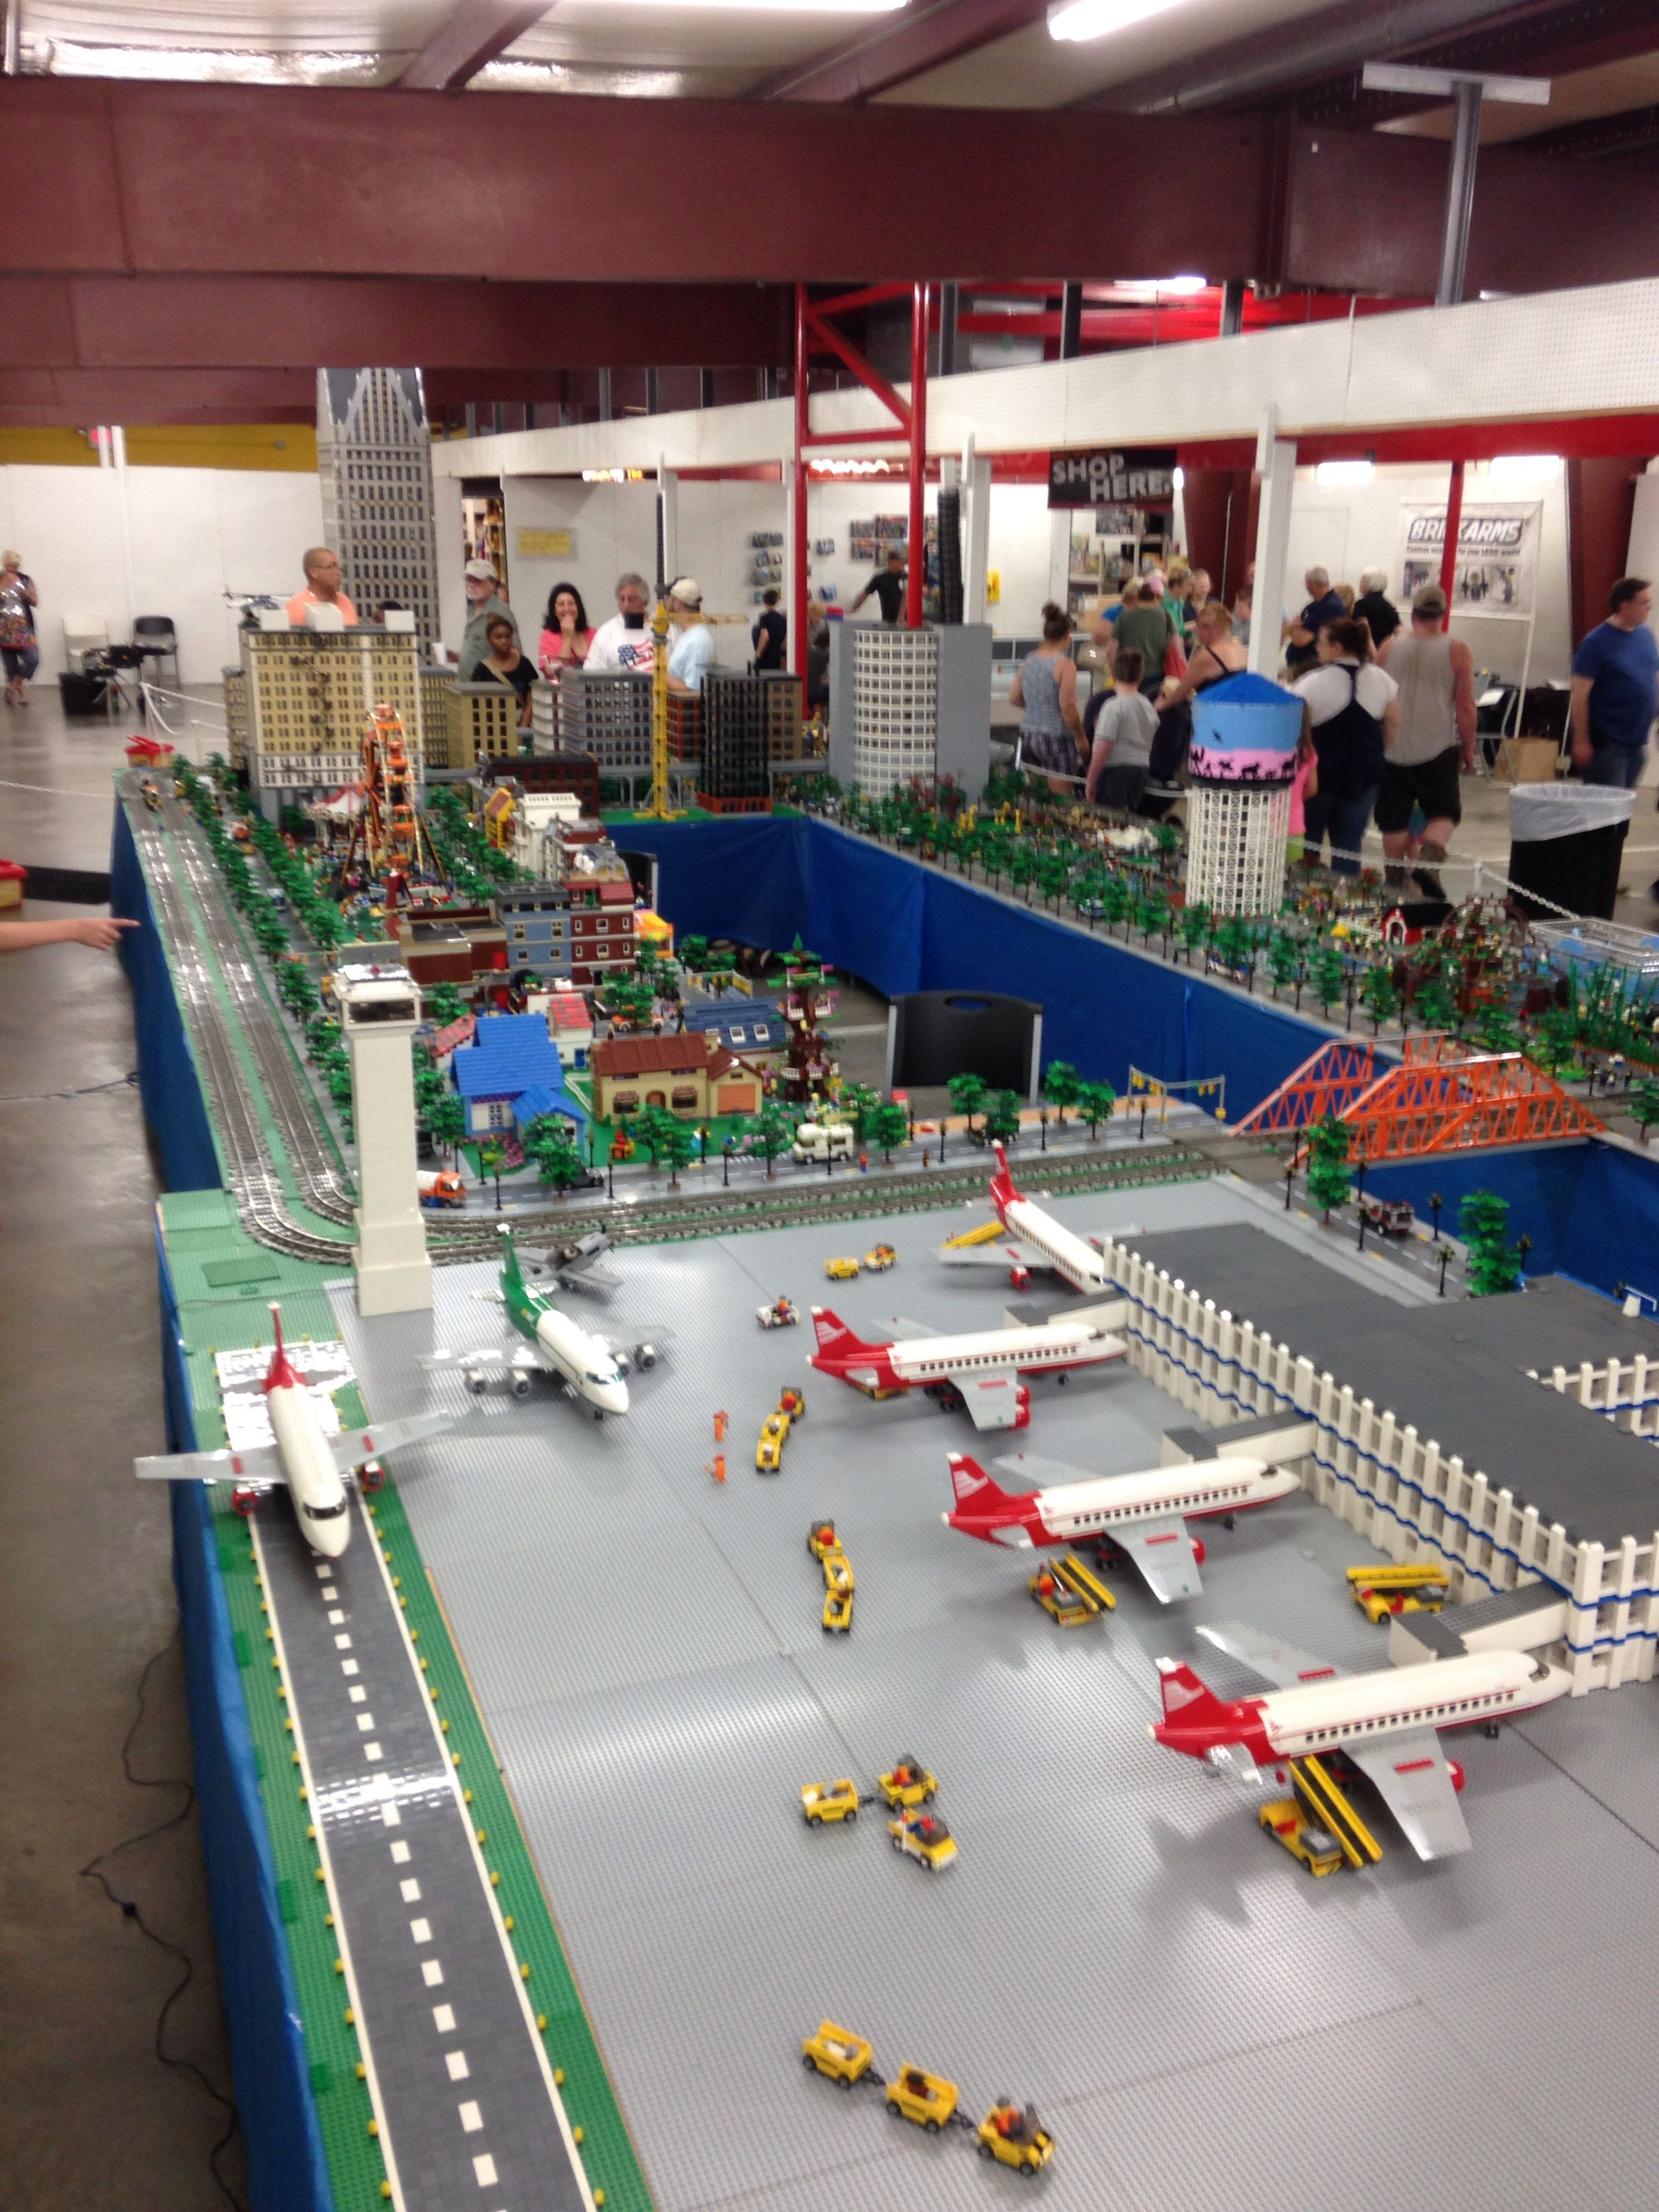 MichLUG LEGO layout at the Caesar Creek Market in Wilmington Ohio. July 26/27 2014.